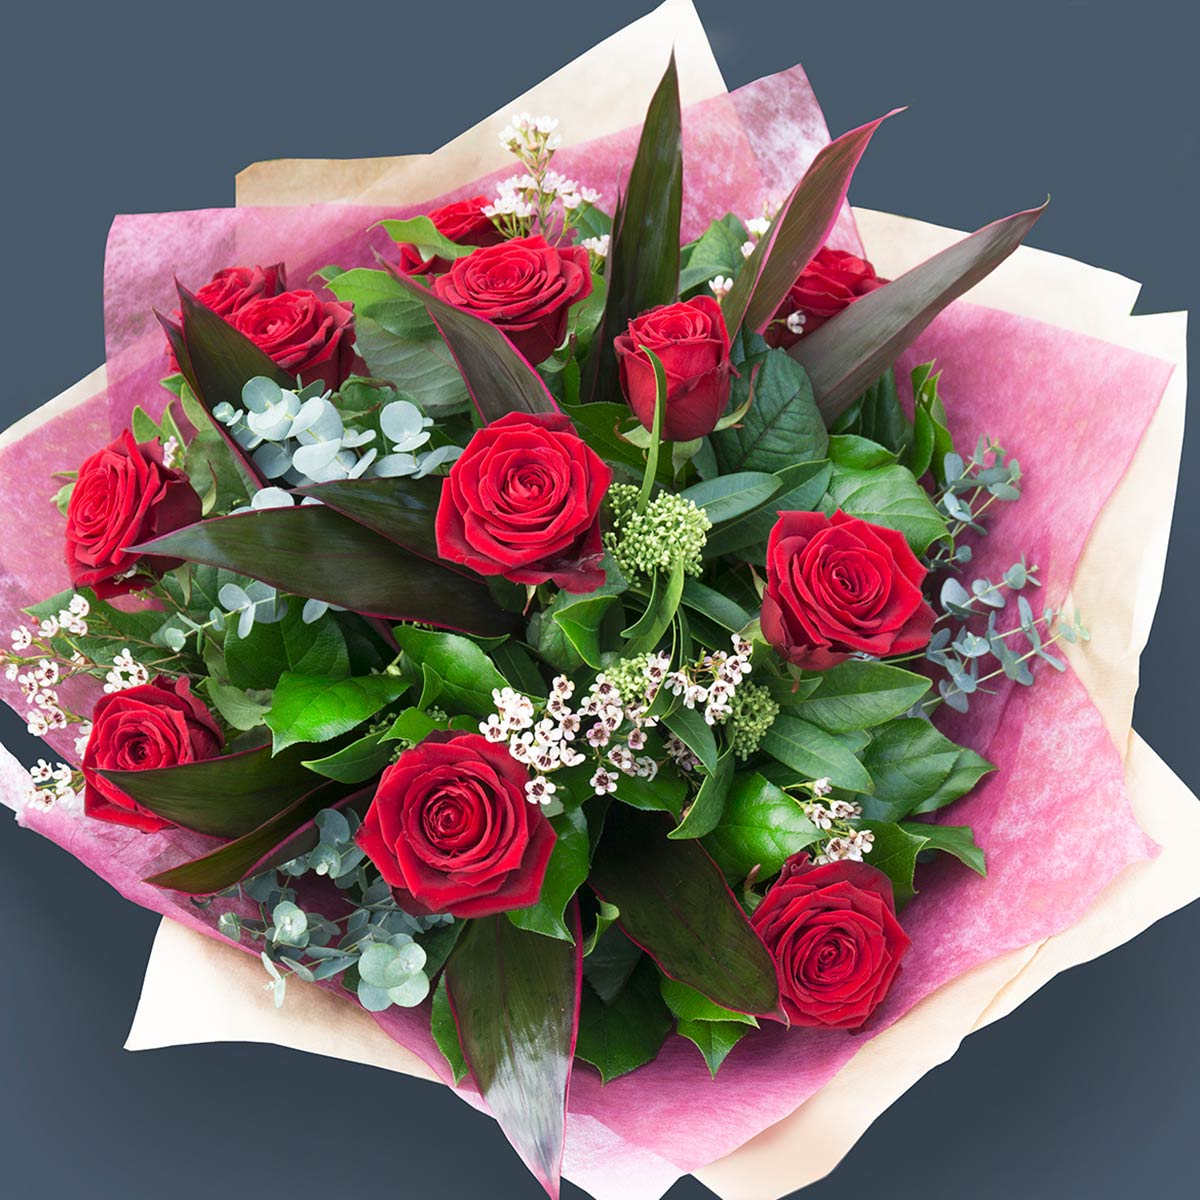 Home trugs in the exeter and surrounding areas you can buy our exeter flowers online our highly experienced florists include rhs chelsea flower show finalists izmirmasajfo